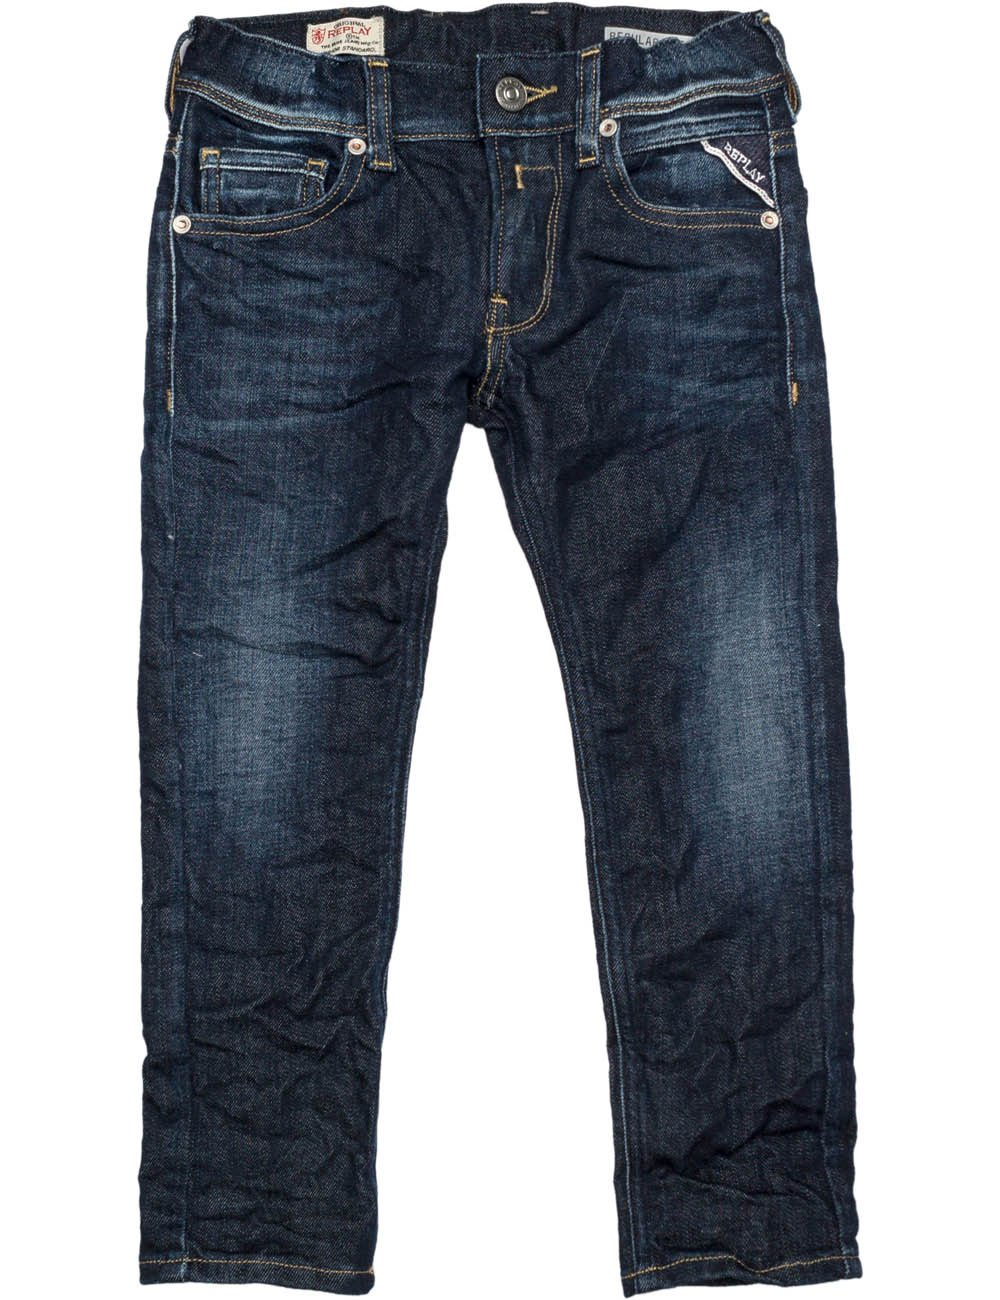 Replay Boys Dark Blue Denim Trousers in Size 14 Years Blue by Replay